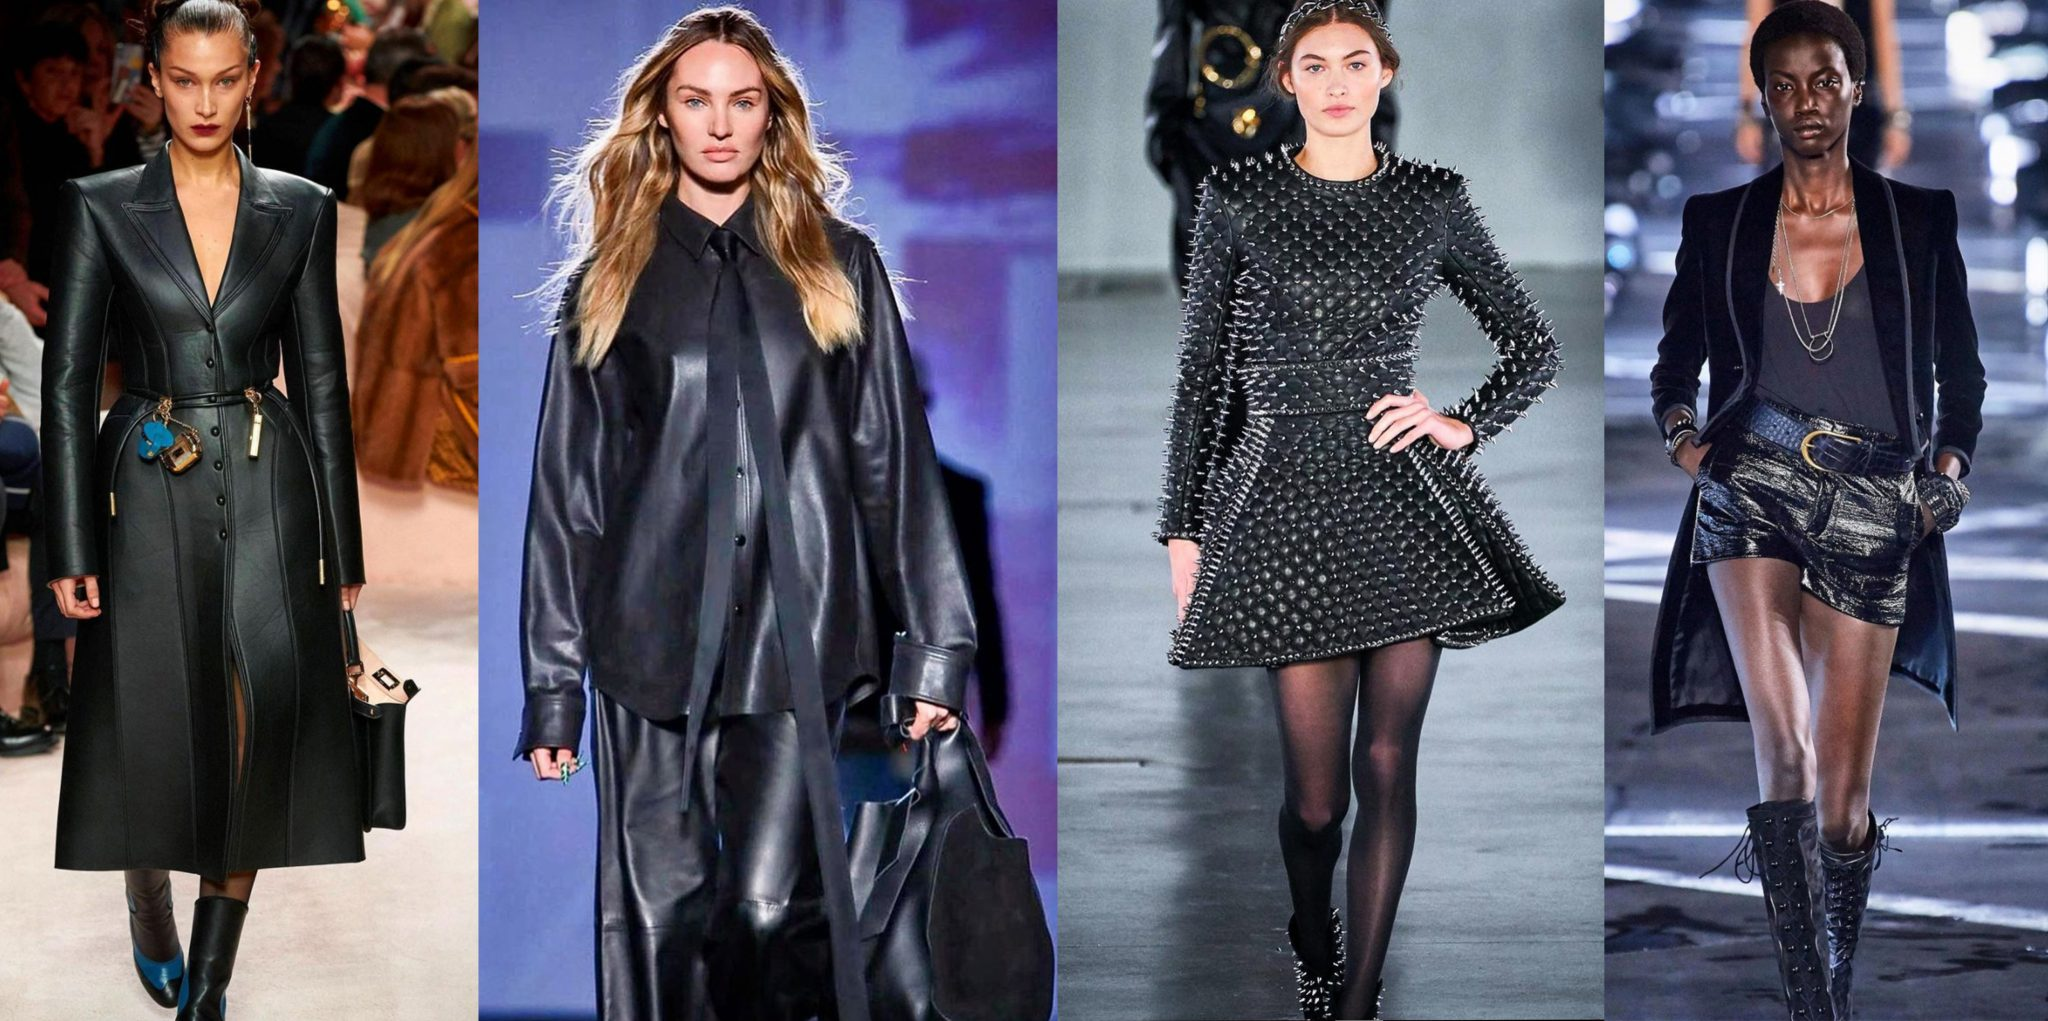 4Runway images of models in leather images by Dwight Samuels